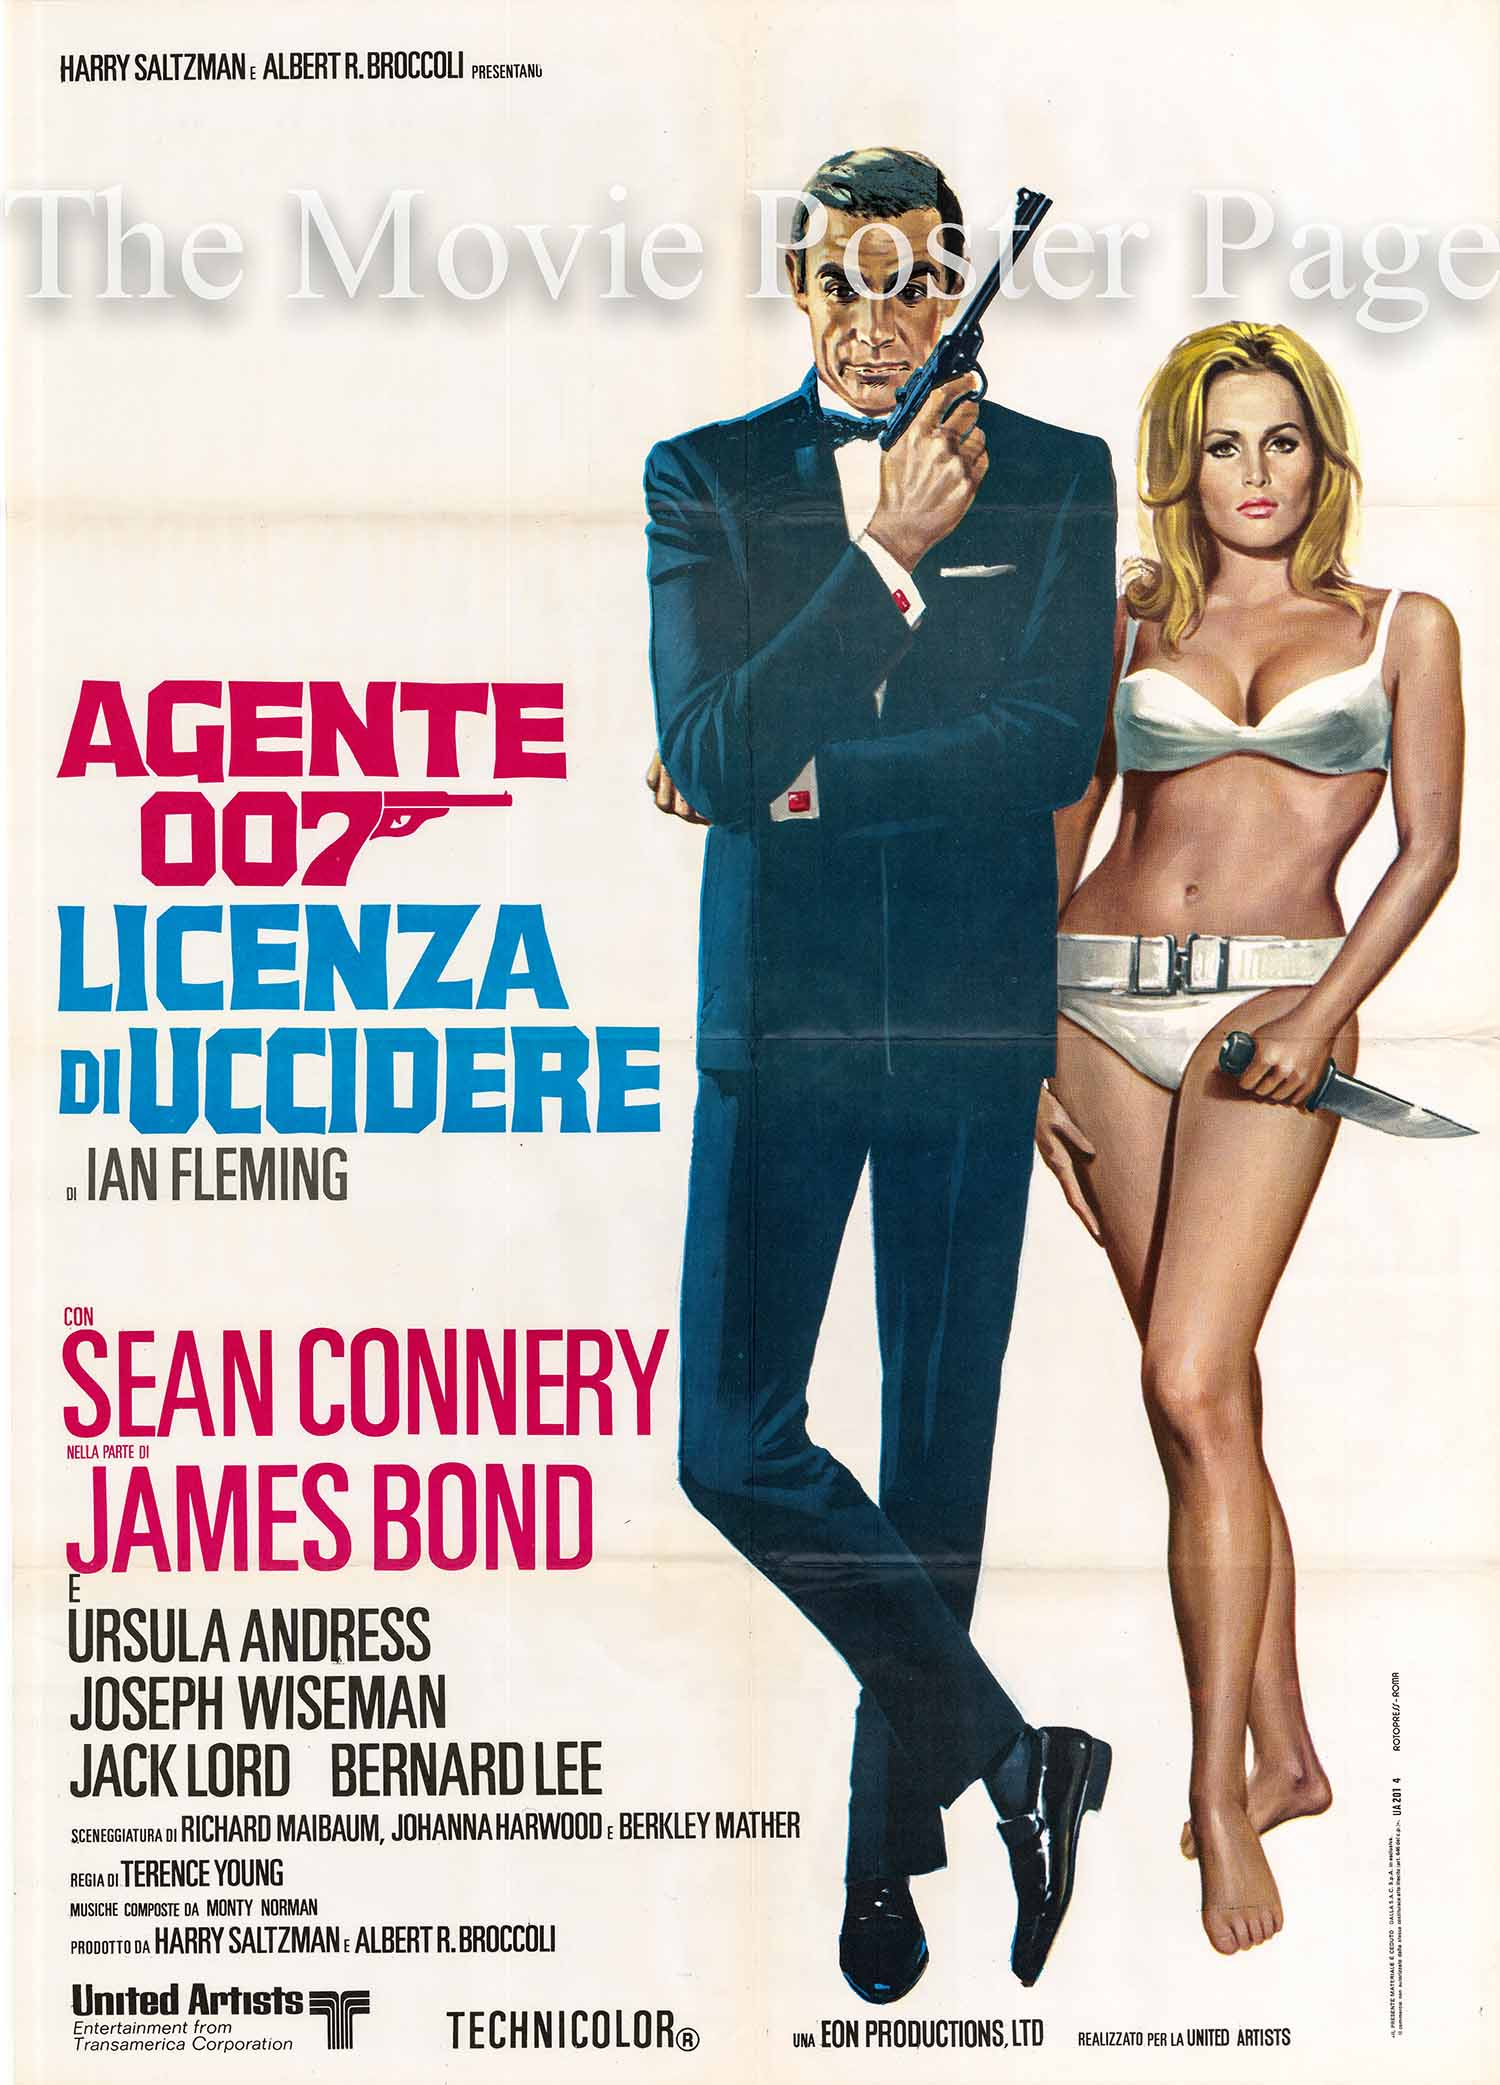 Pictured is an Italian two-sheet promotional poster for a 1971 rerelease of the 1962 Terence Young film Dr. No starring Sean Connery as James Bond.